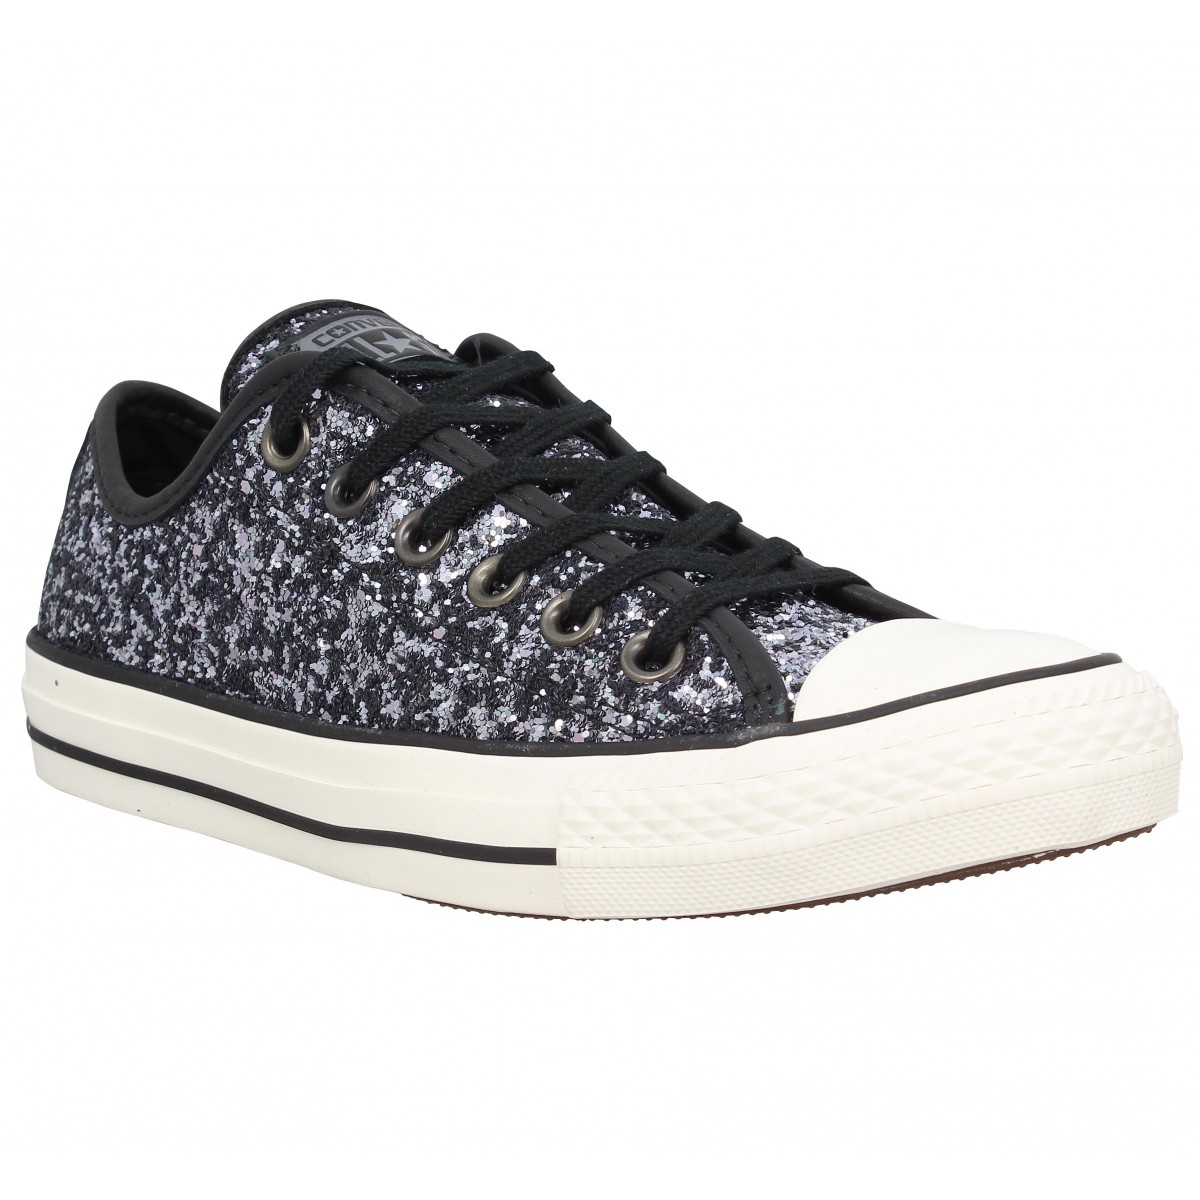 converse chuck taylor all star paillettes femme gun metal femme fanny chaussures. Black Bedroom Furniture Sets. Home Design Ideas